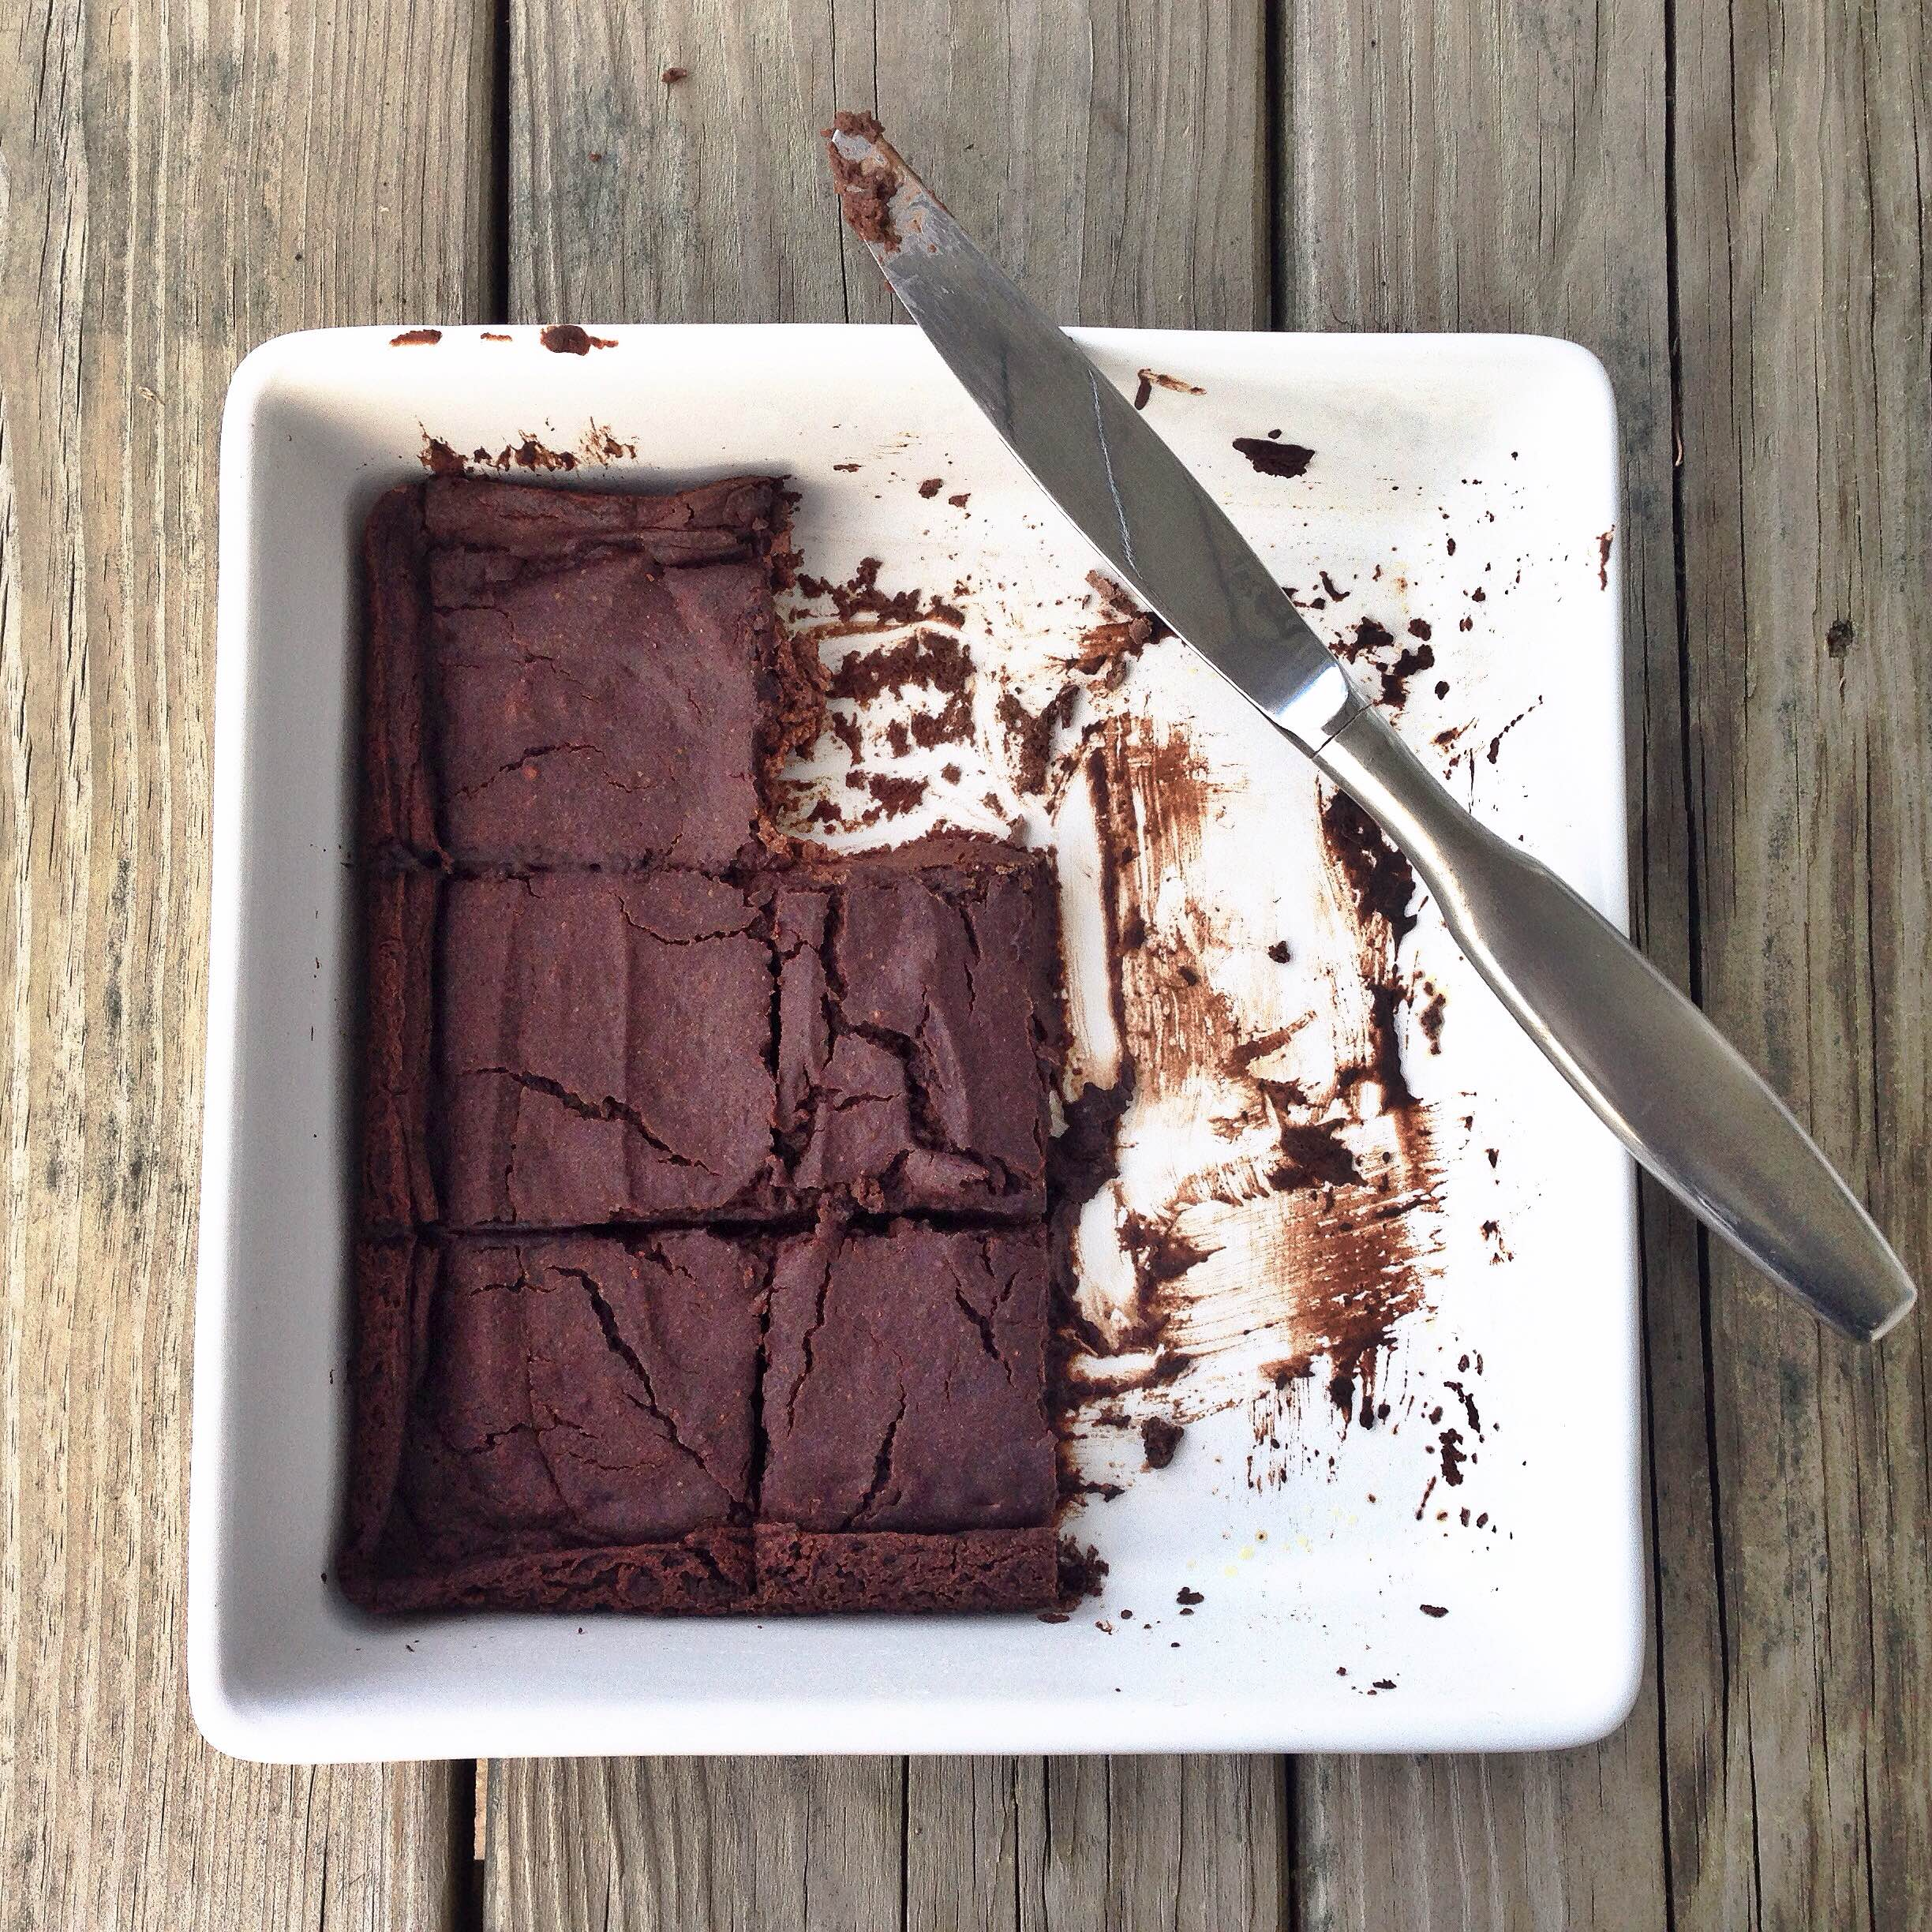 These flourless brownies are very gooey when they are warm, almost like a brownie pudding! Once they are chilled they are thick like fudge! Enjoy them either way!   The best news is that instead of flour these brownies use black beans and zucchini for the base of the batter plus tons of cacao (or cocoa) powder. What I love about cacao powder is that it is rich in antioxidants plus it adds fiber, magnesium, and iron to the brownies. You can find cacao powder in the natural food baking section of the grocery store, at health food stores, or at on-line retailers.